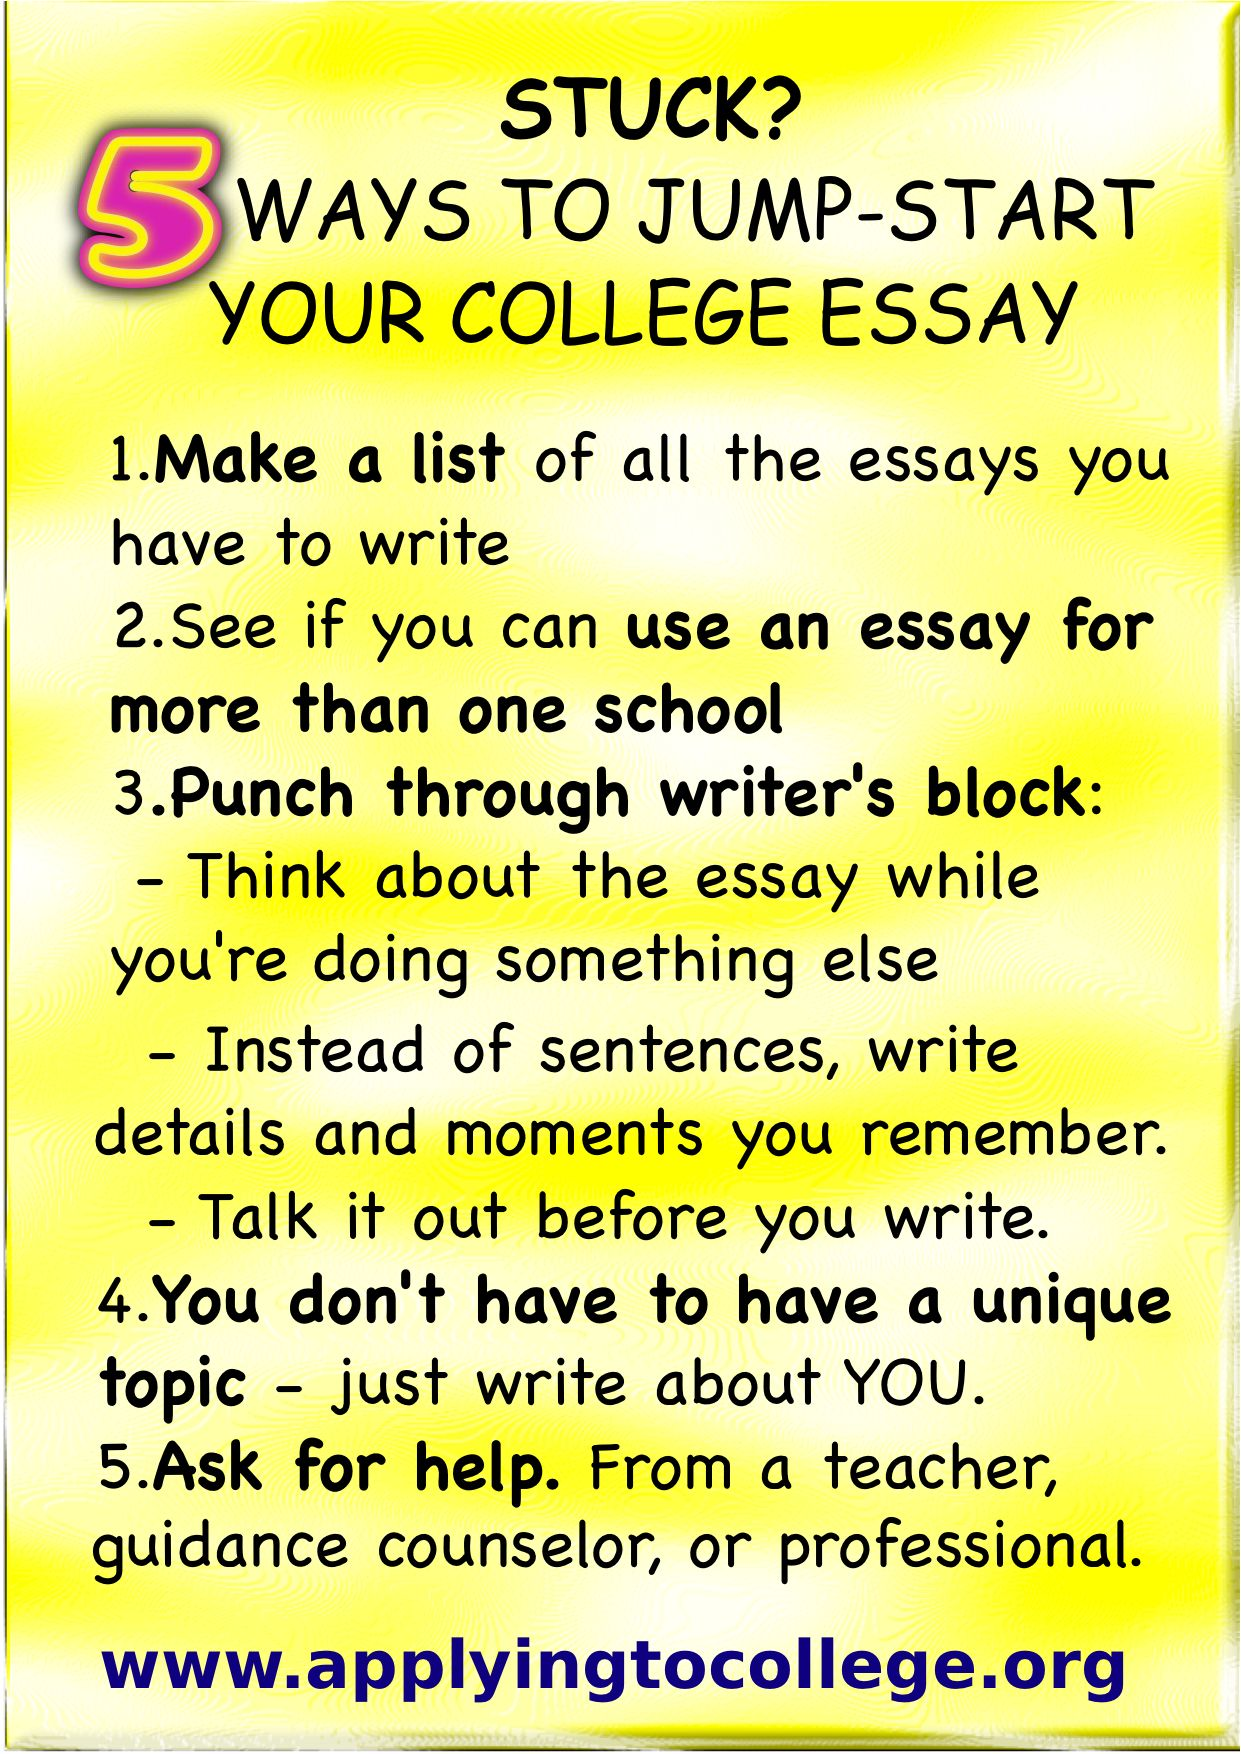 018 Stress Essay Awesome Outline Impact On Health Cause And Effect College Students Full